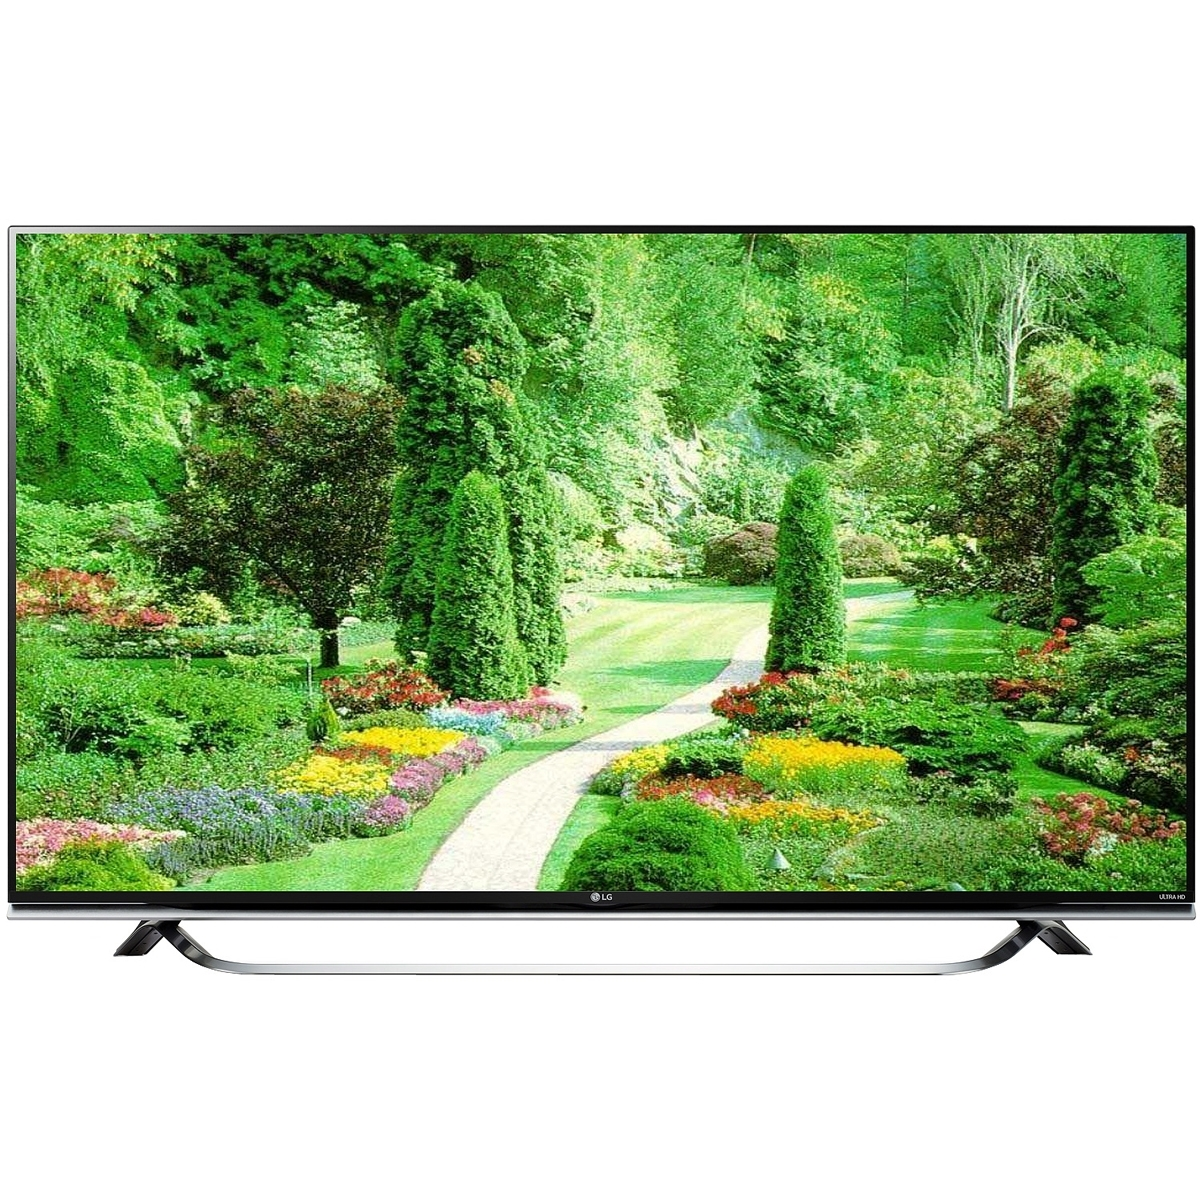 LG 65INCH CLASS UHD 4K LED SMART HDTV - 65UF8500 - RESIDENTIAL USA VERSION -LG ORIGINAL PANEL - FULL ONE YEAR MANUFACTURERS WARRANTY!